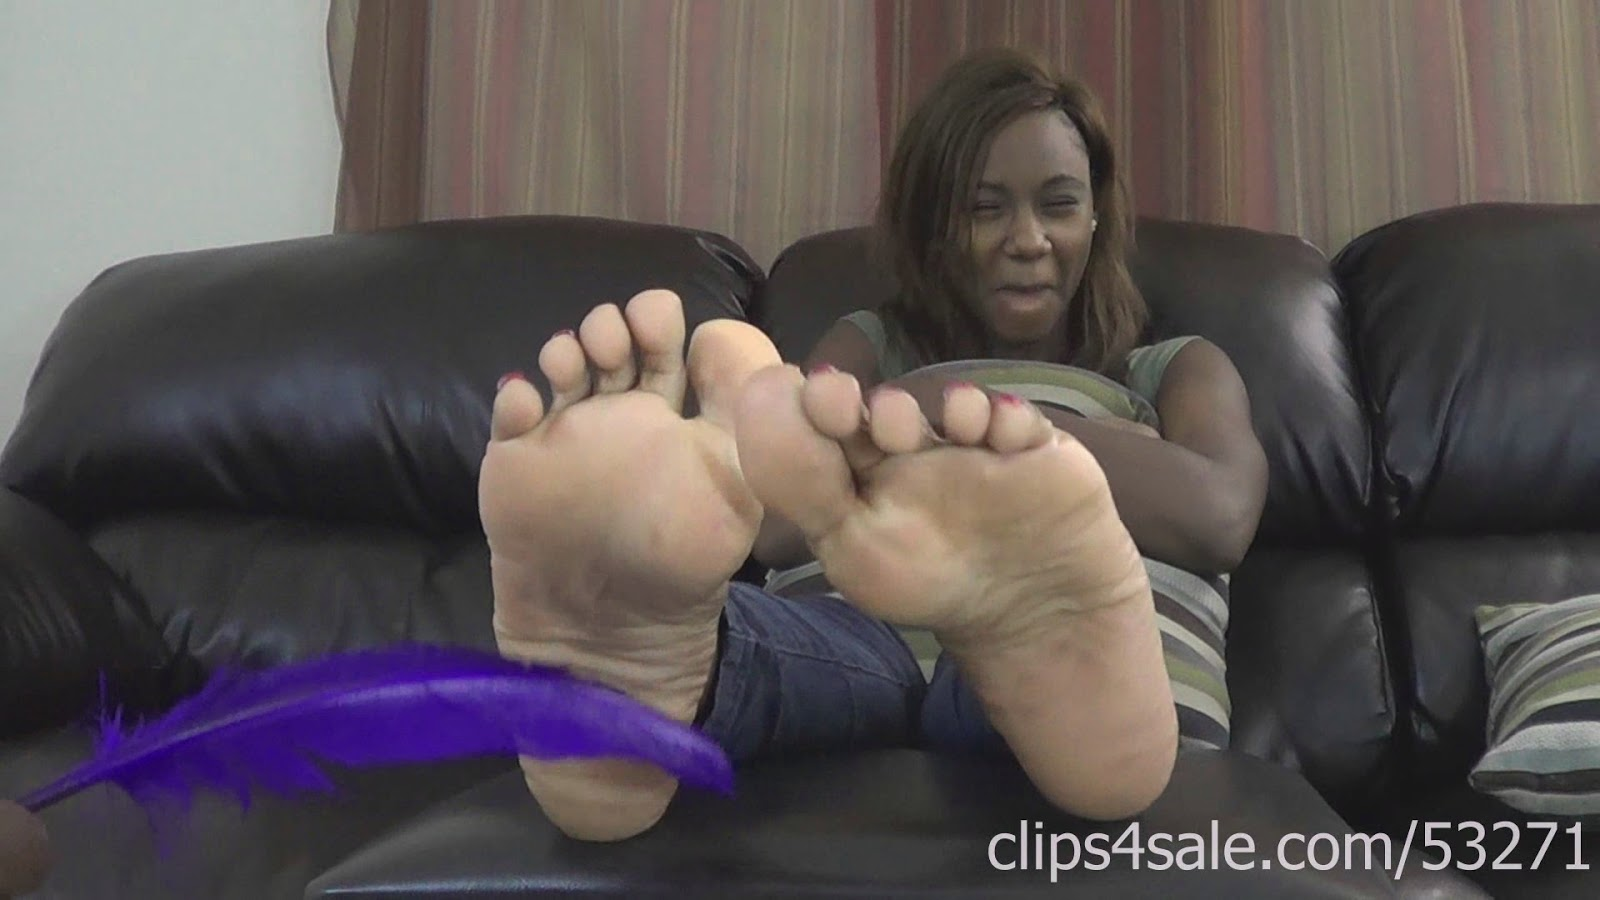 8 Pov Clips Every Clip I Share Until November